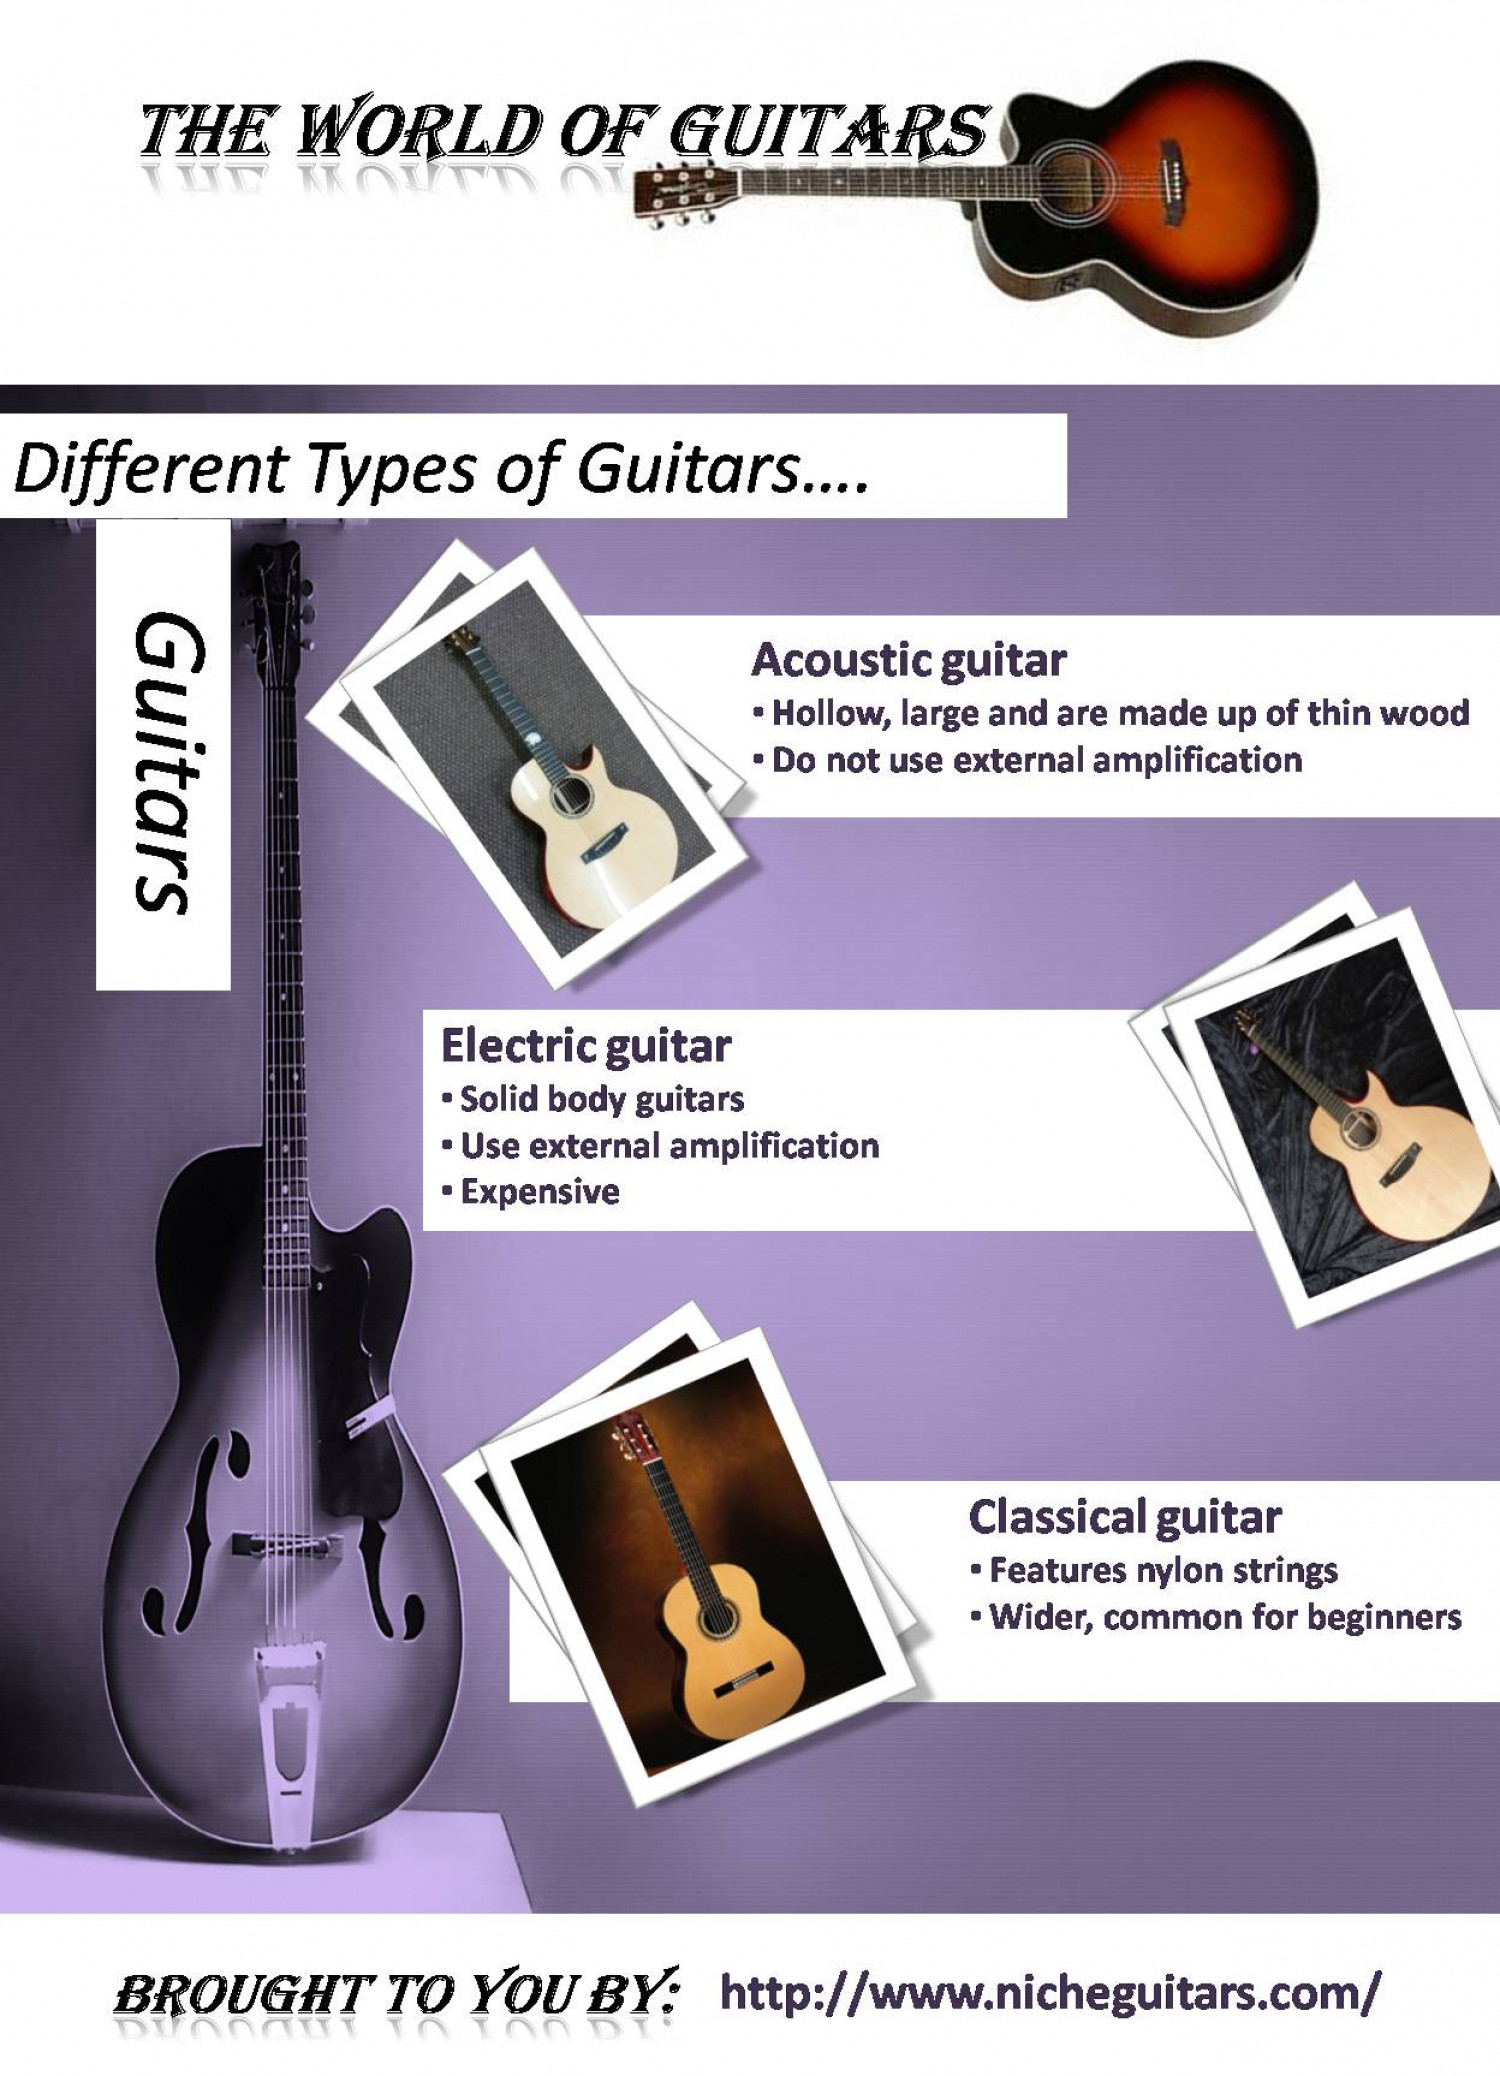 The World of Guitars Infographic